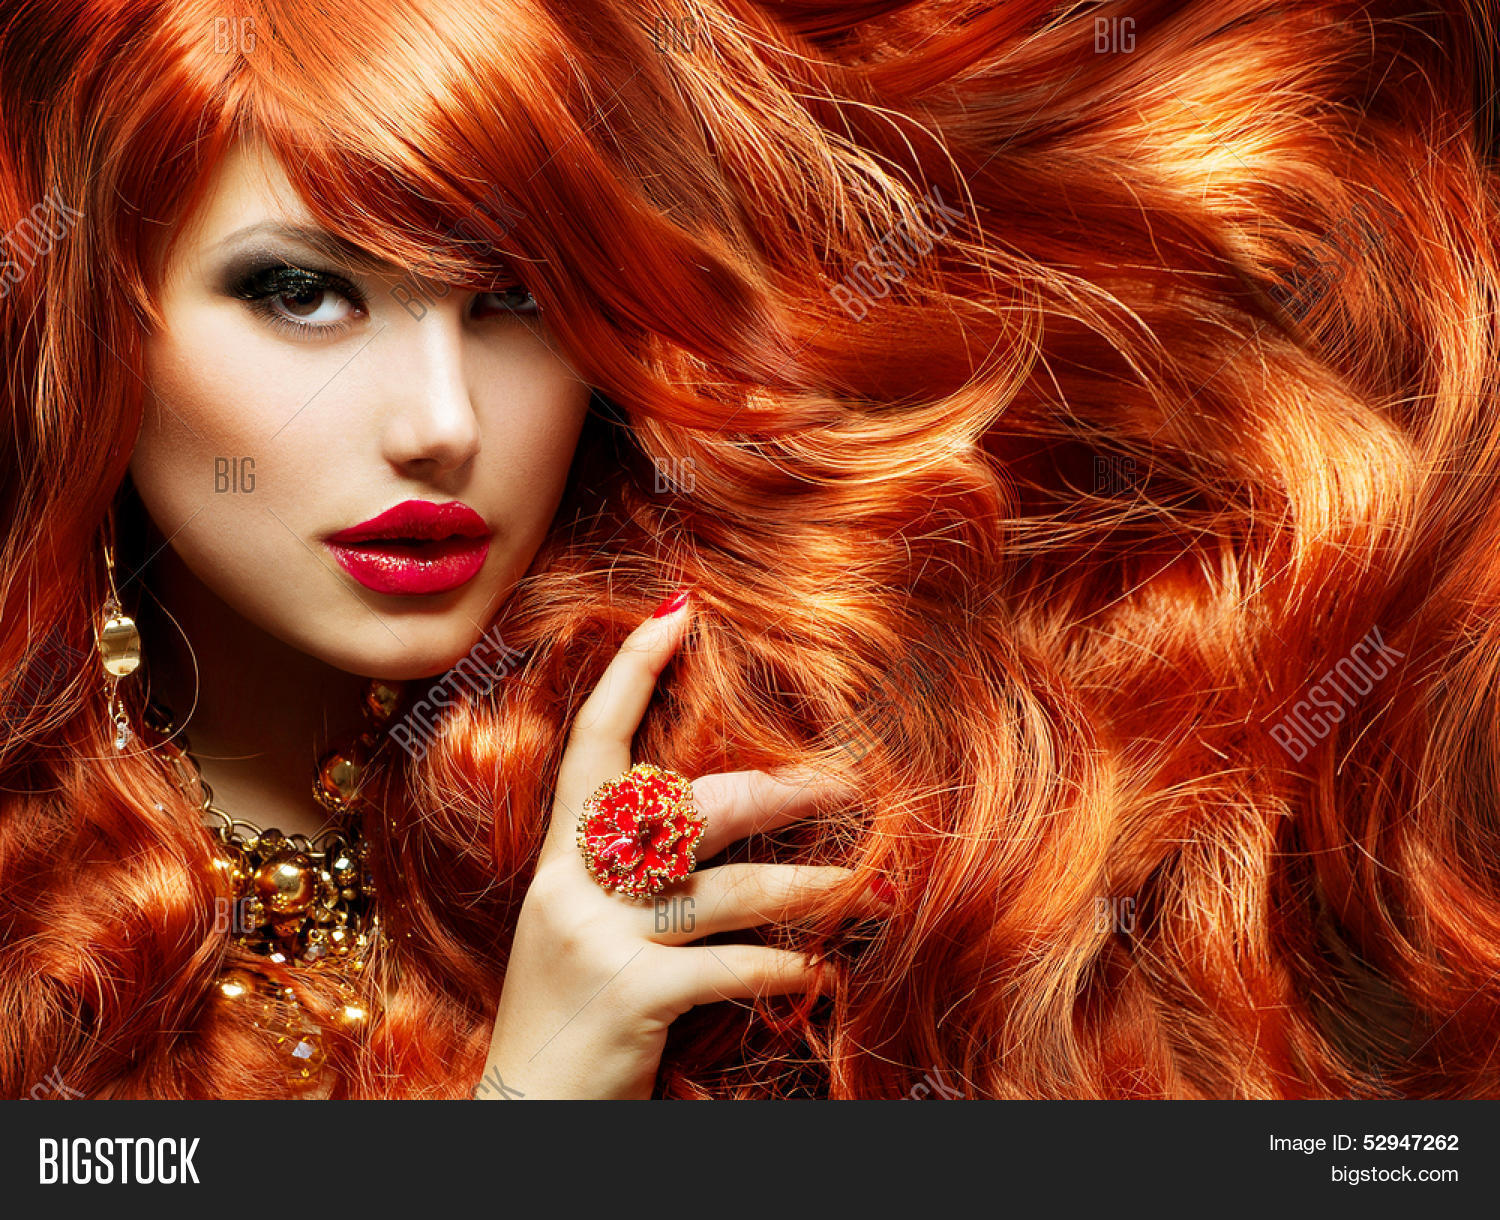 long curly red hair fashion woman image amp photo bigstock